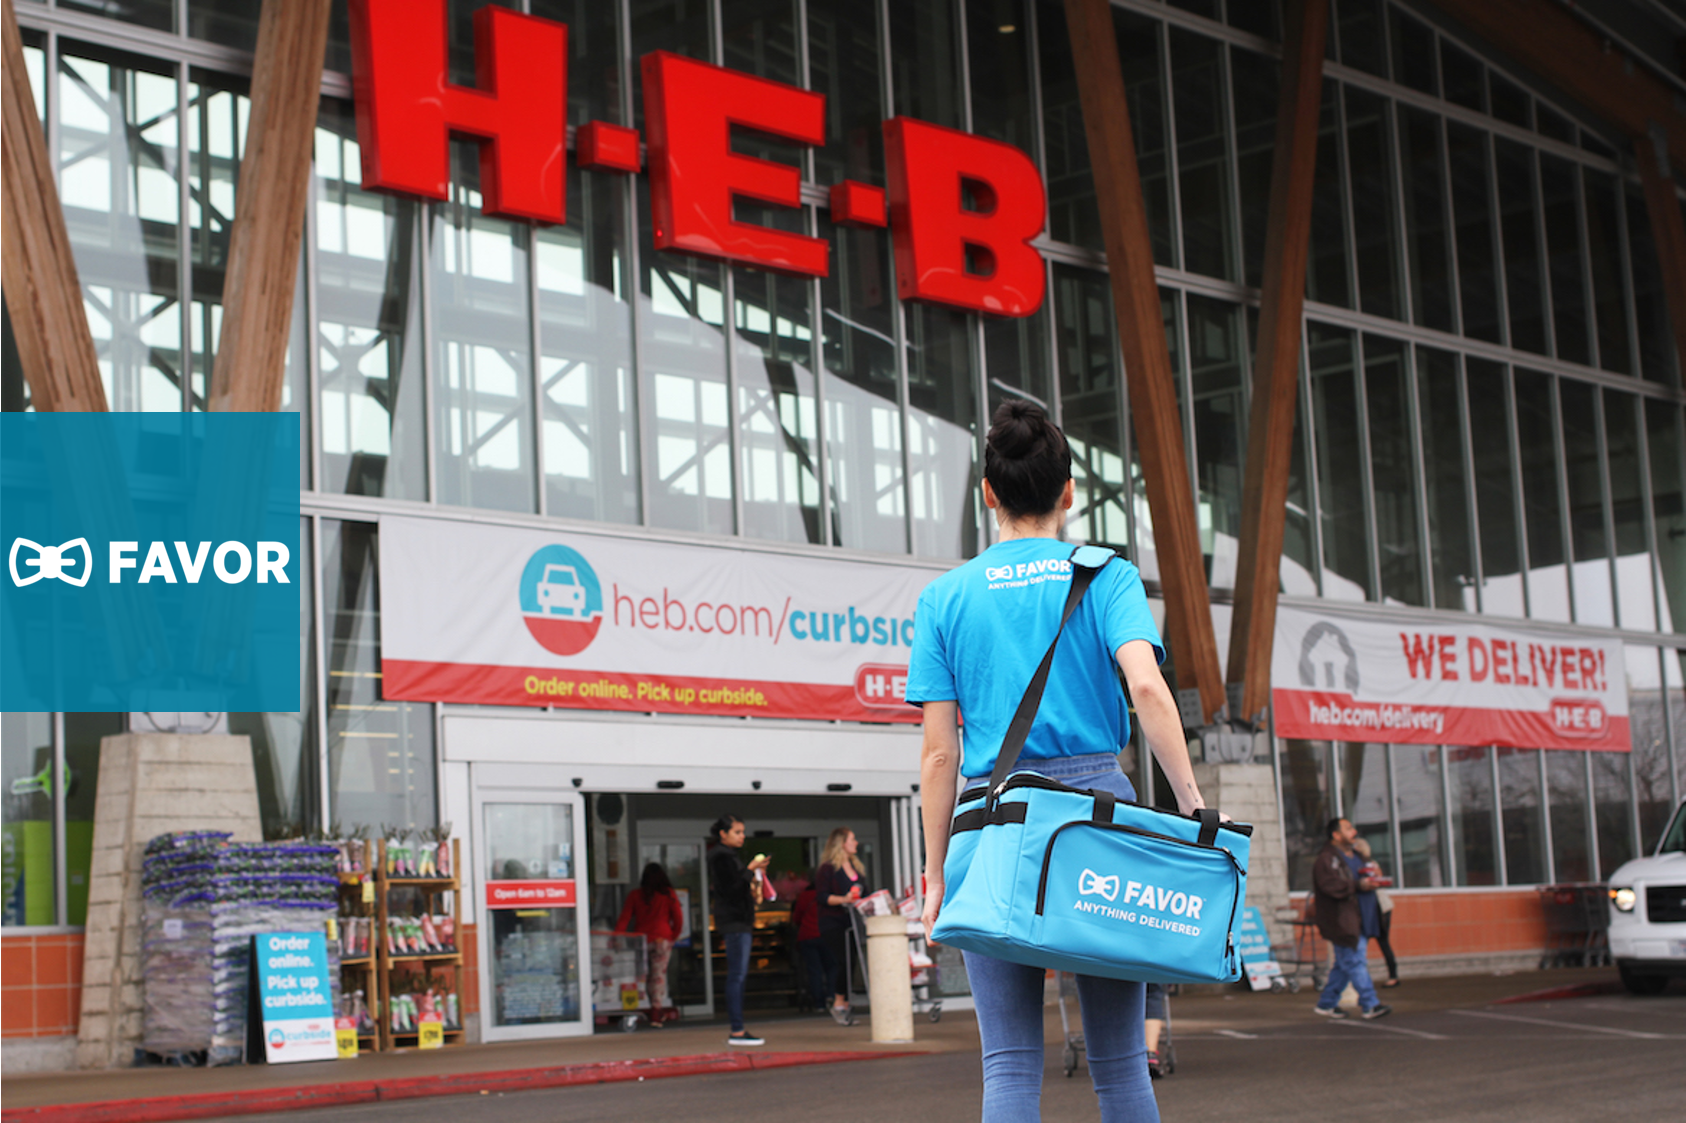 On-Demand Delivery - favordelivery.comHQ: Austin, TXSector: Digital ExperiencesS3 Investments: Series A, Series BExit: Acquired by HEB Grocery in February '18